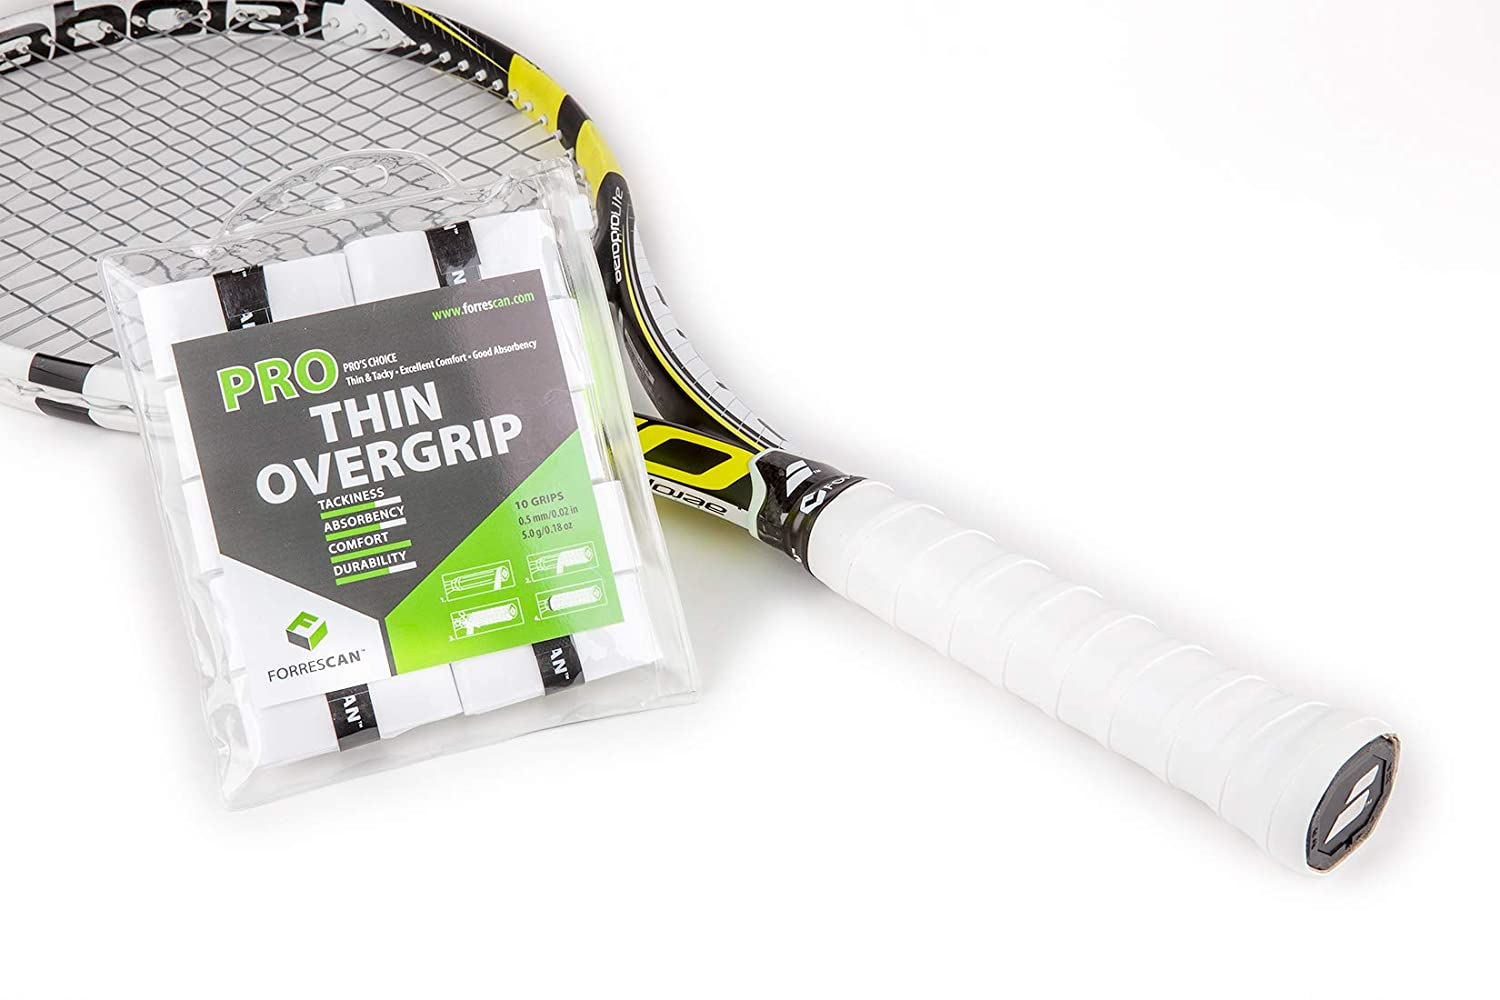 Amazon.com : ForresCAN Tennis Overgrip - Pro Thin White ...